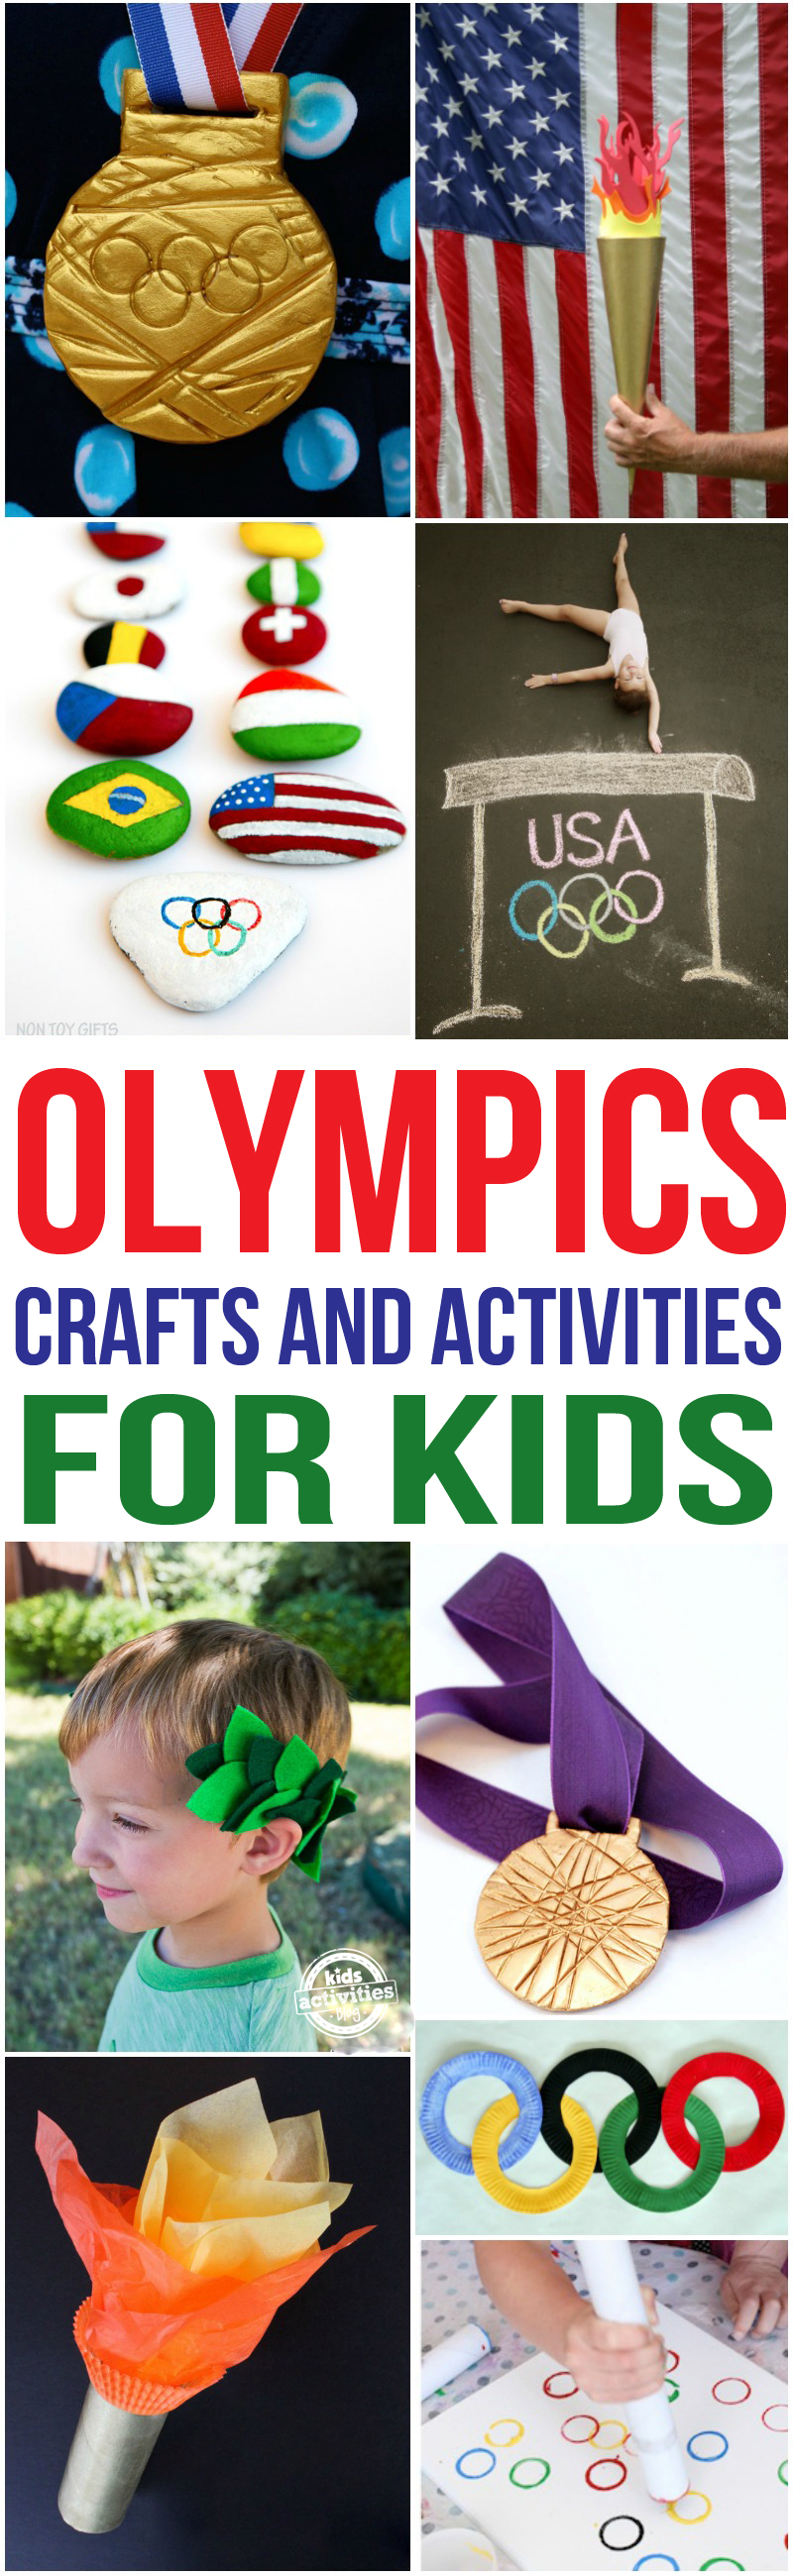 Olympics Crafts for Kids via @hollyhomer